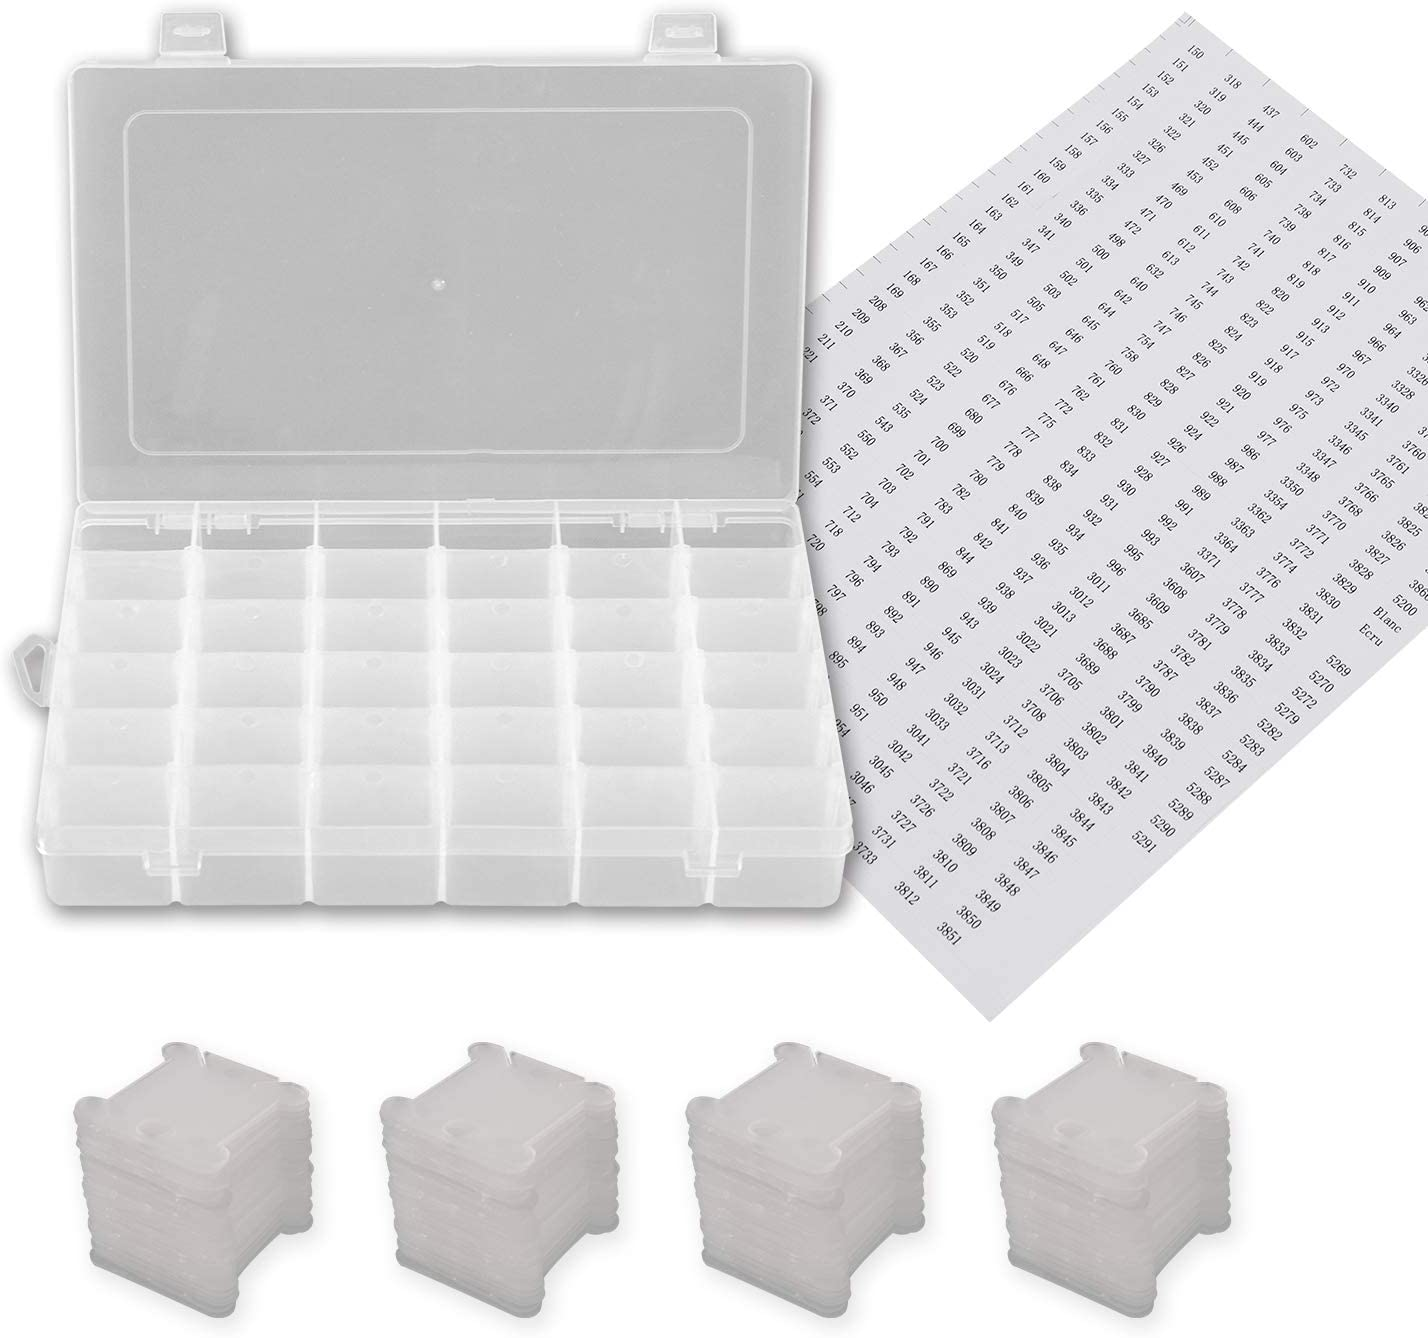 1 Pack 36 Grids Plastic Embroidery Floss Cross Stitch Organizer Box with 108 Pieces Floss Bobbins 712sjosMDUL